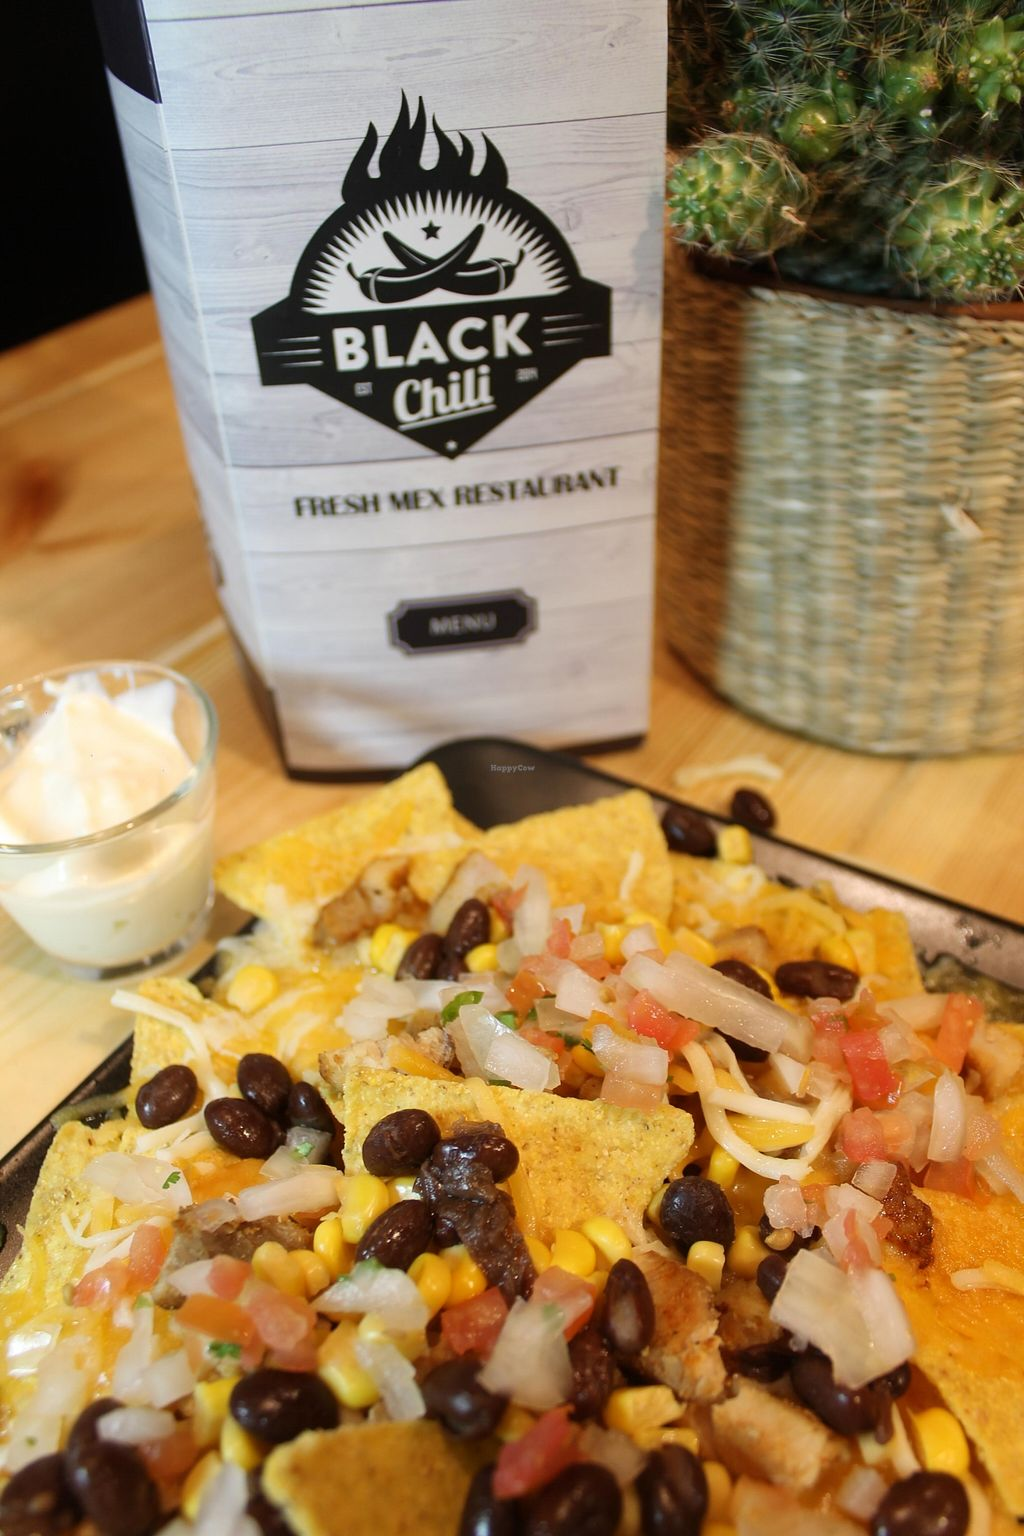 """Photo of CLOSED: Black Chili  by <a href=""""/members/profile/lerio78"""">lerio78</a> <br/>Great nachos!! <br/> October 6, 2015  - <a href='/contact/abuse/image/63005/120447'>Report</a>"""